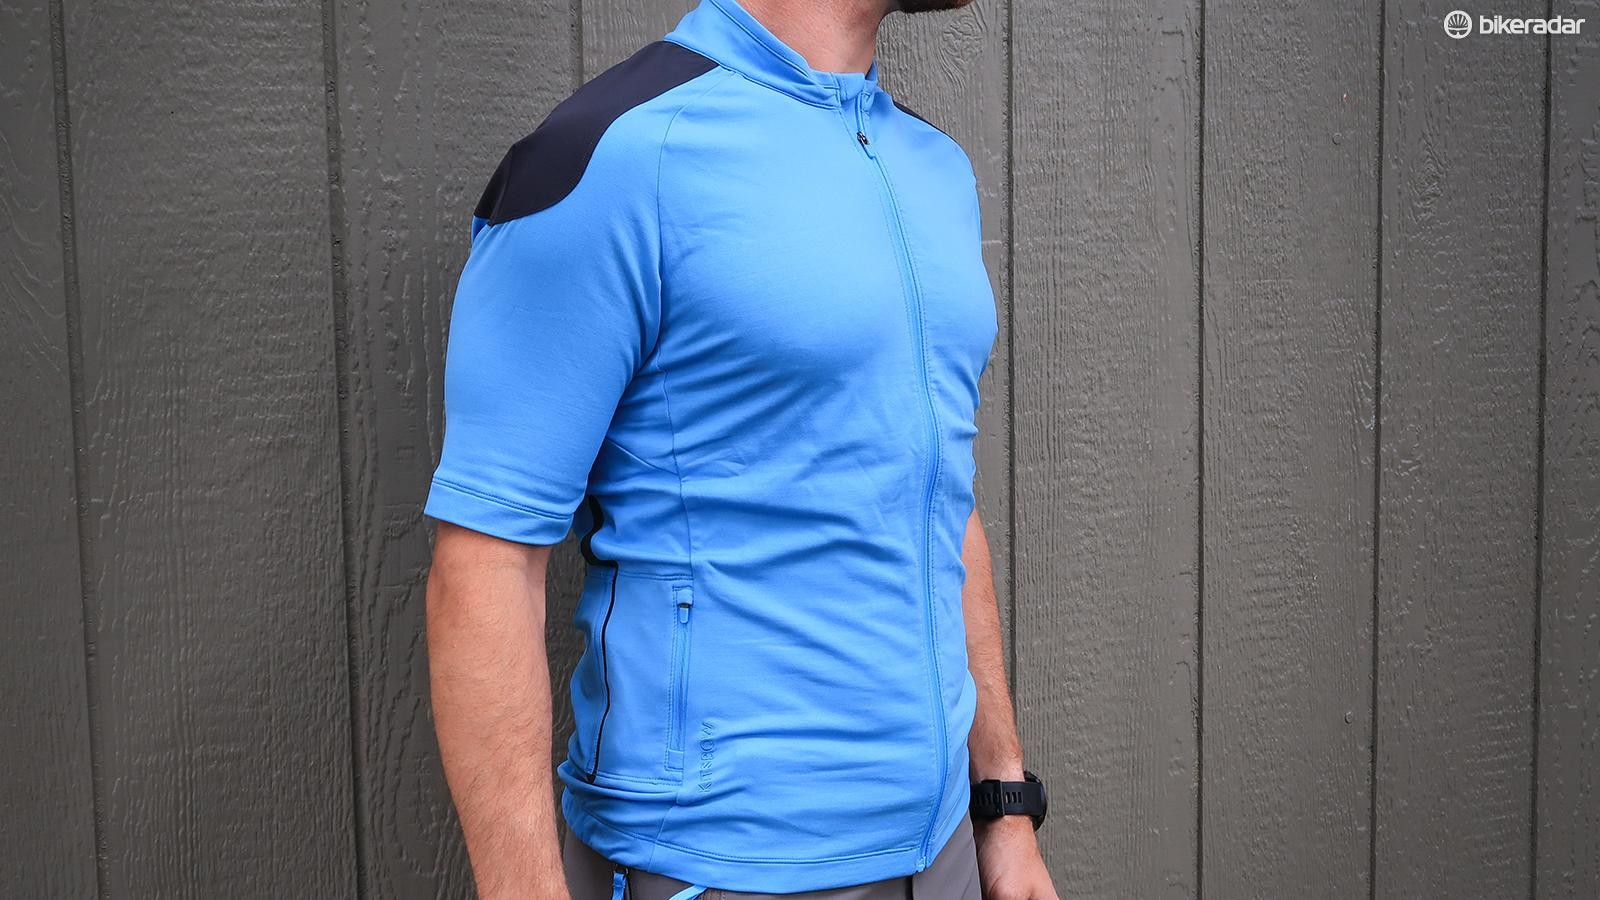 Kitsbow's Origin SS Jersey in the 'Kitsbleu' colorway